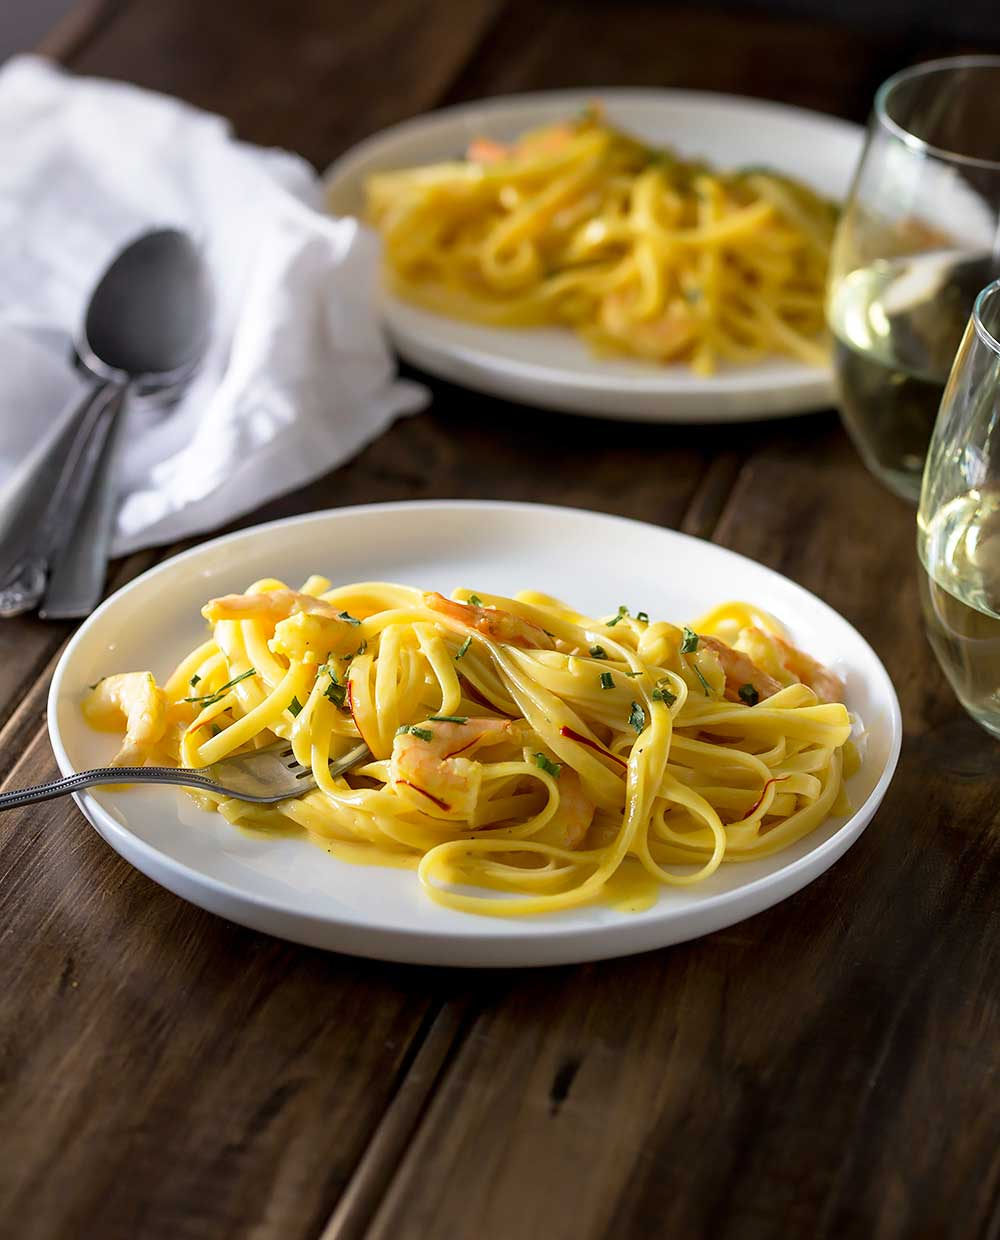 Creamy, rich and luxurious! This Saffron and Prawn linguine is quick and easy, making it perfect for busy nights but also special enough for entertaining.